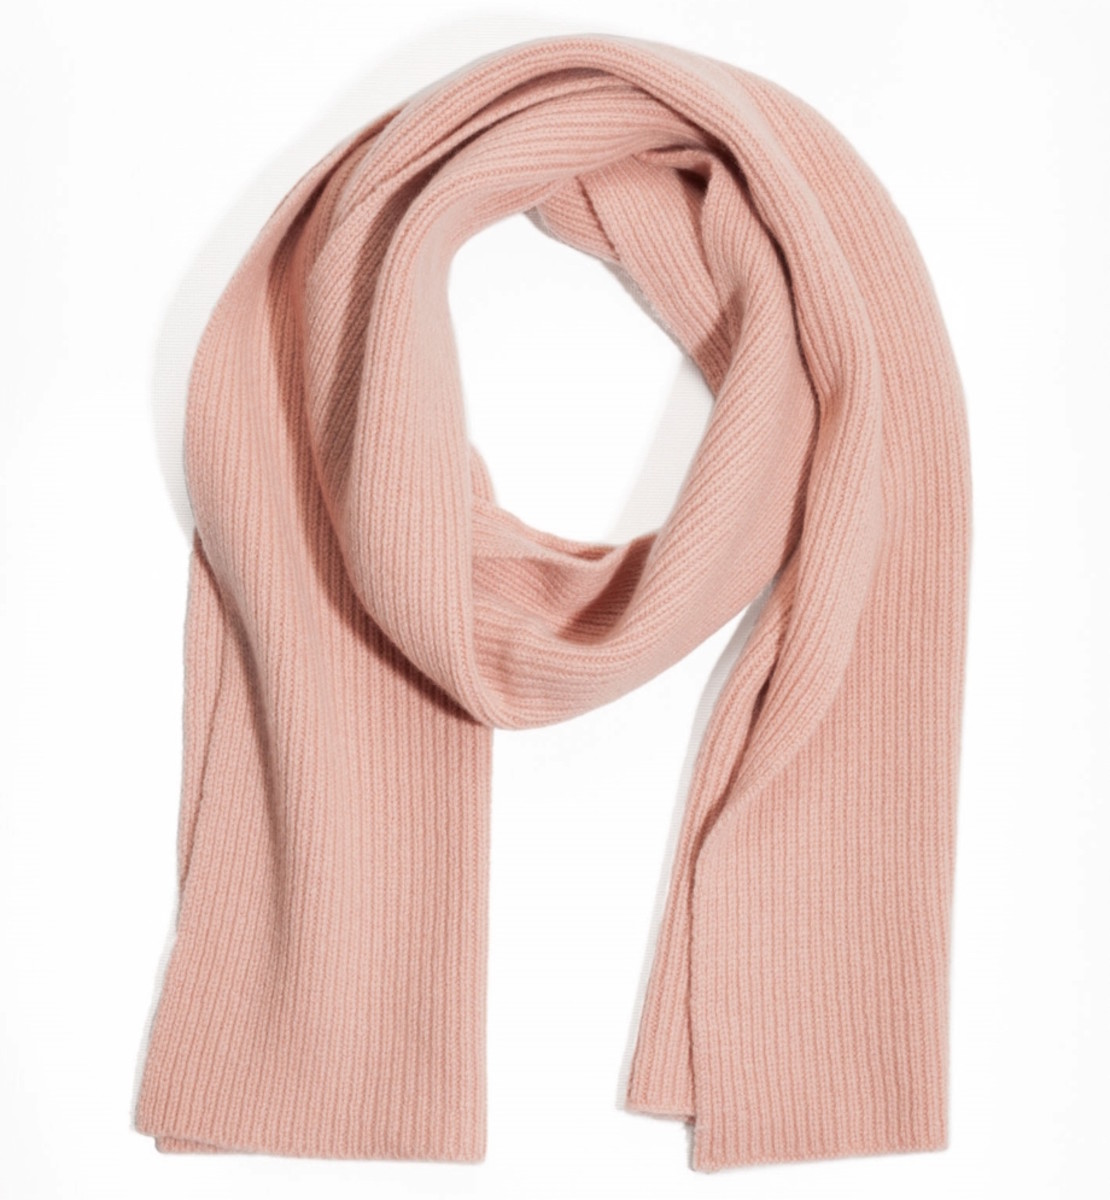 & Other Stories ribbed cashmere scarf, $95, available at & Other Stories.